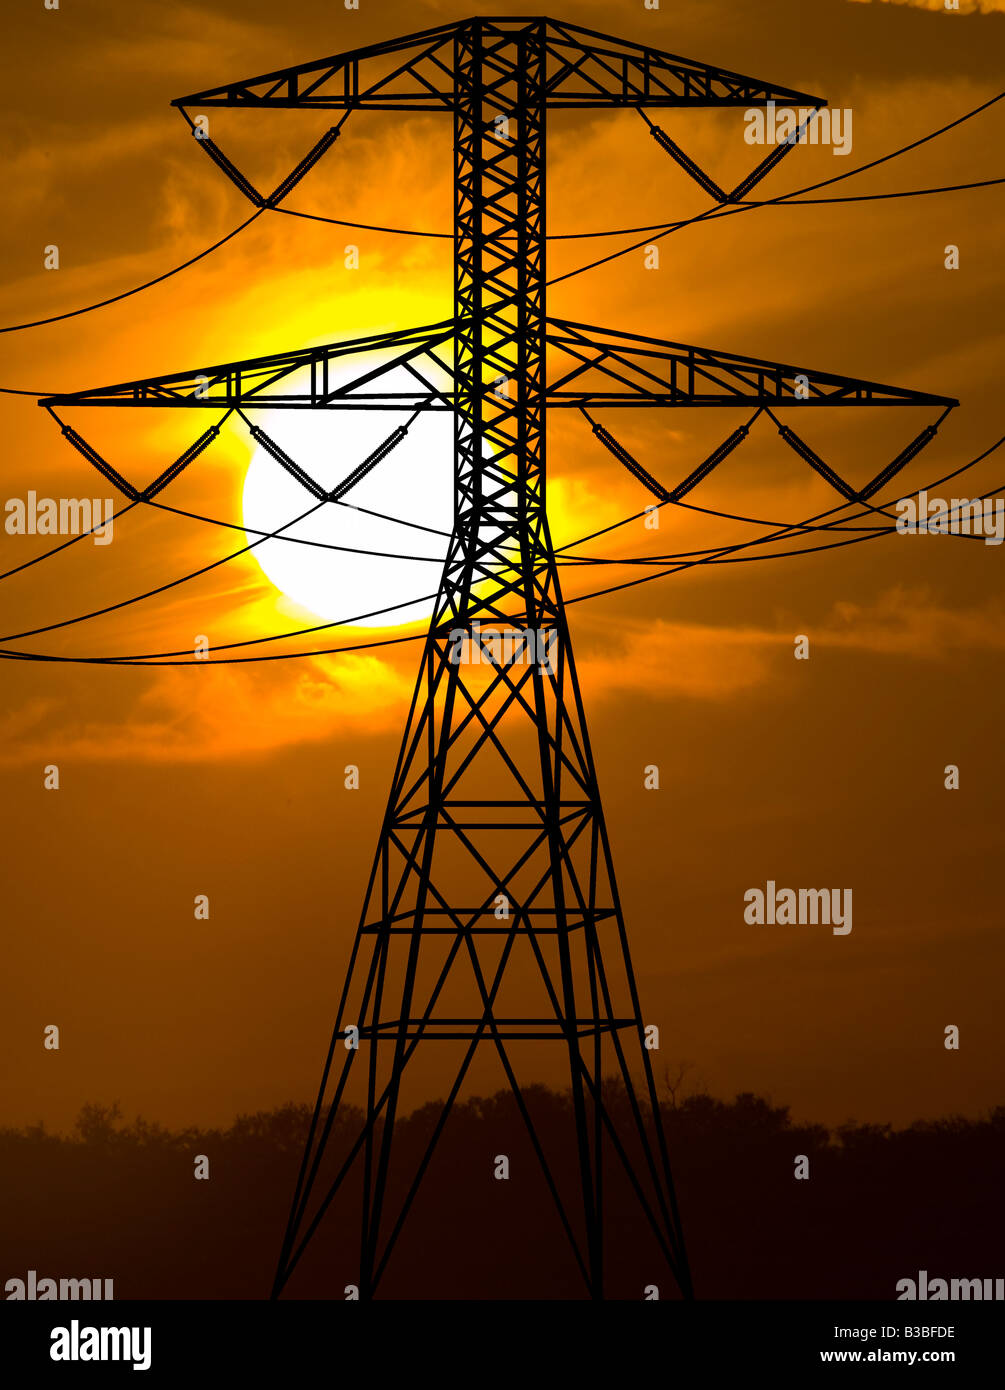 transmission power line tower at sunset - Stock Image